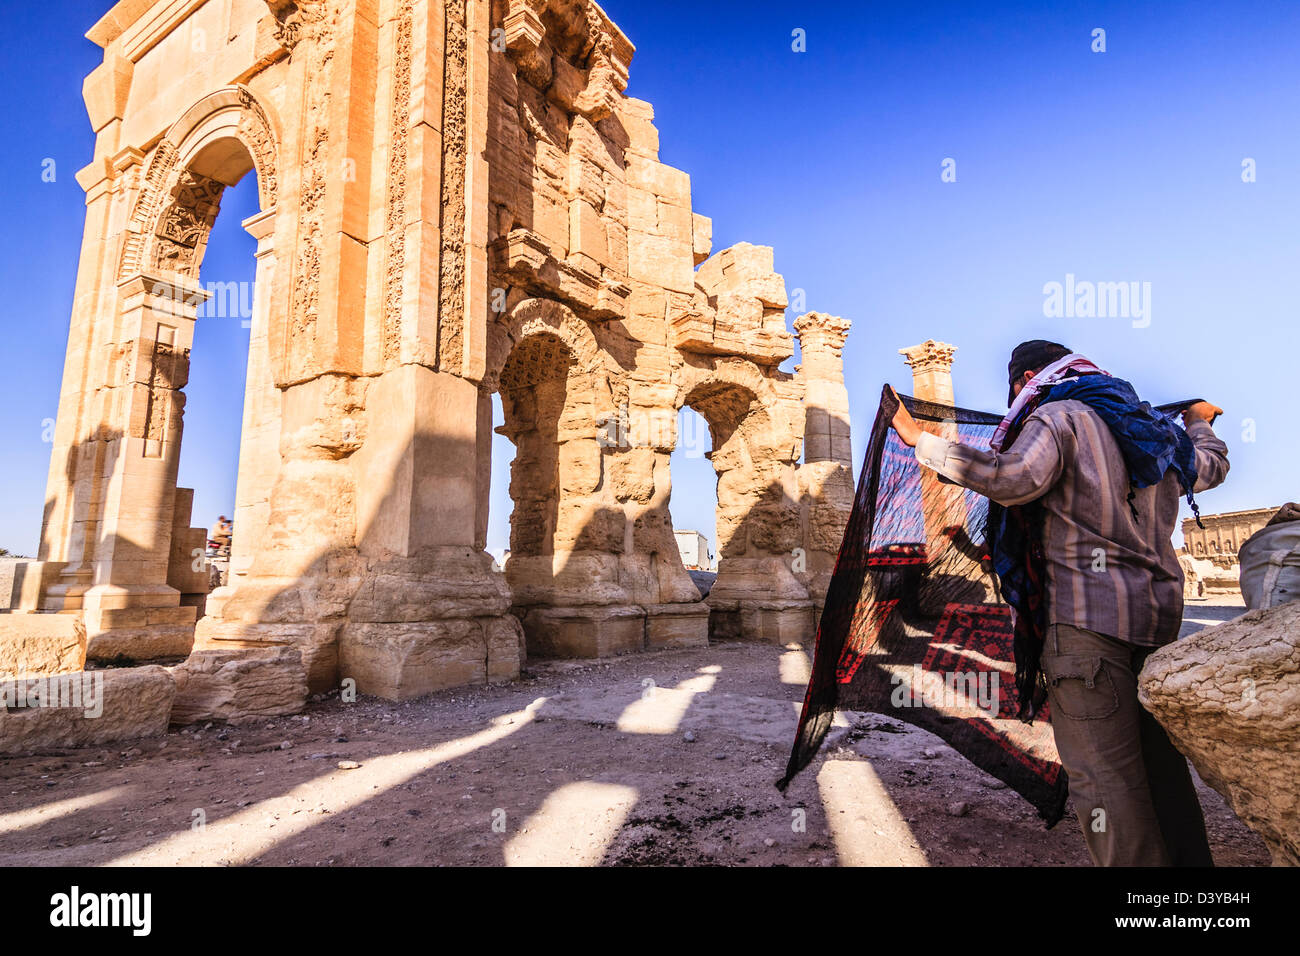 Silk souvenirs seller waiting for tourists at the Monumental Arch of Palmyra ruins. Palmyra, Syria - Stock Image